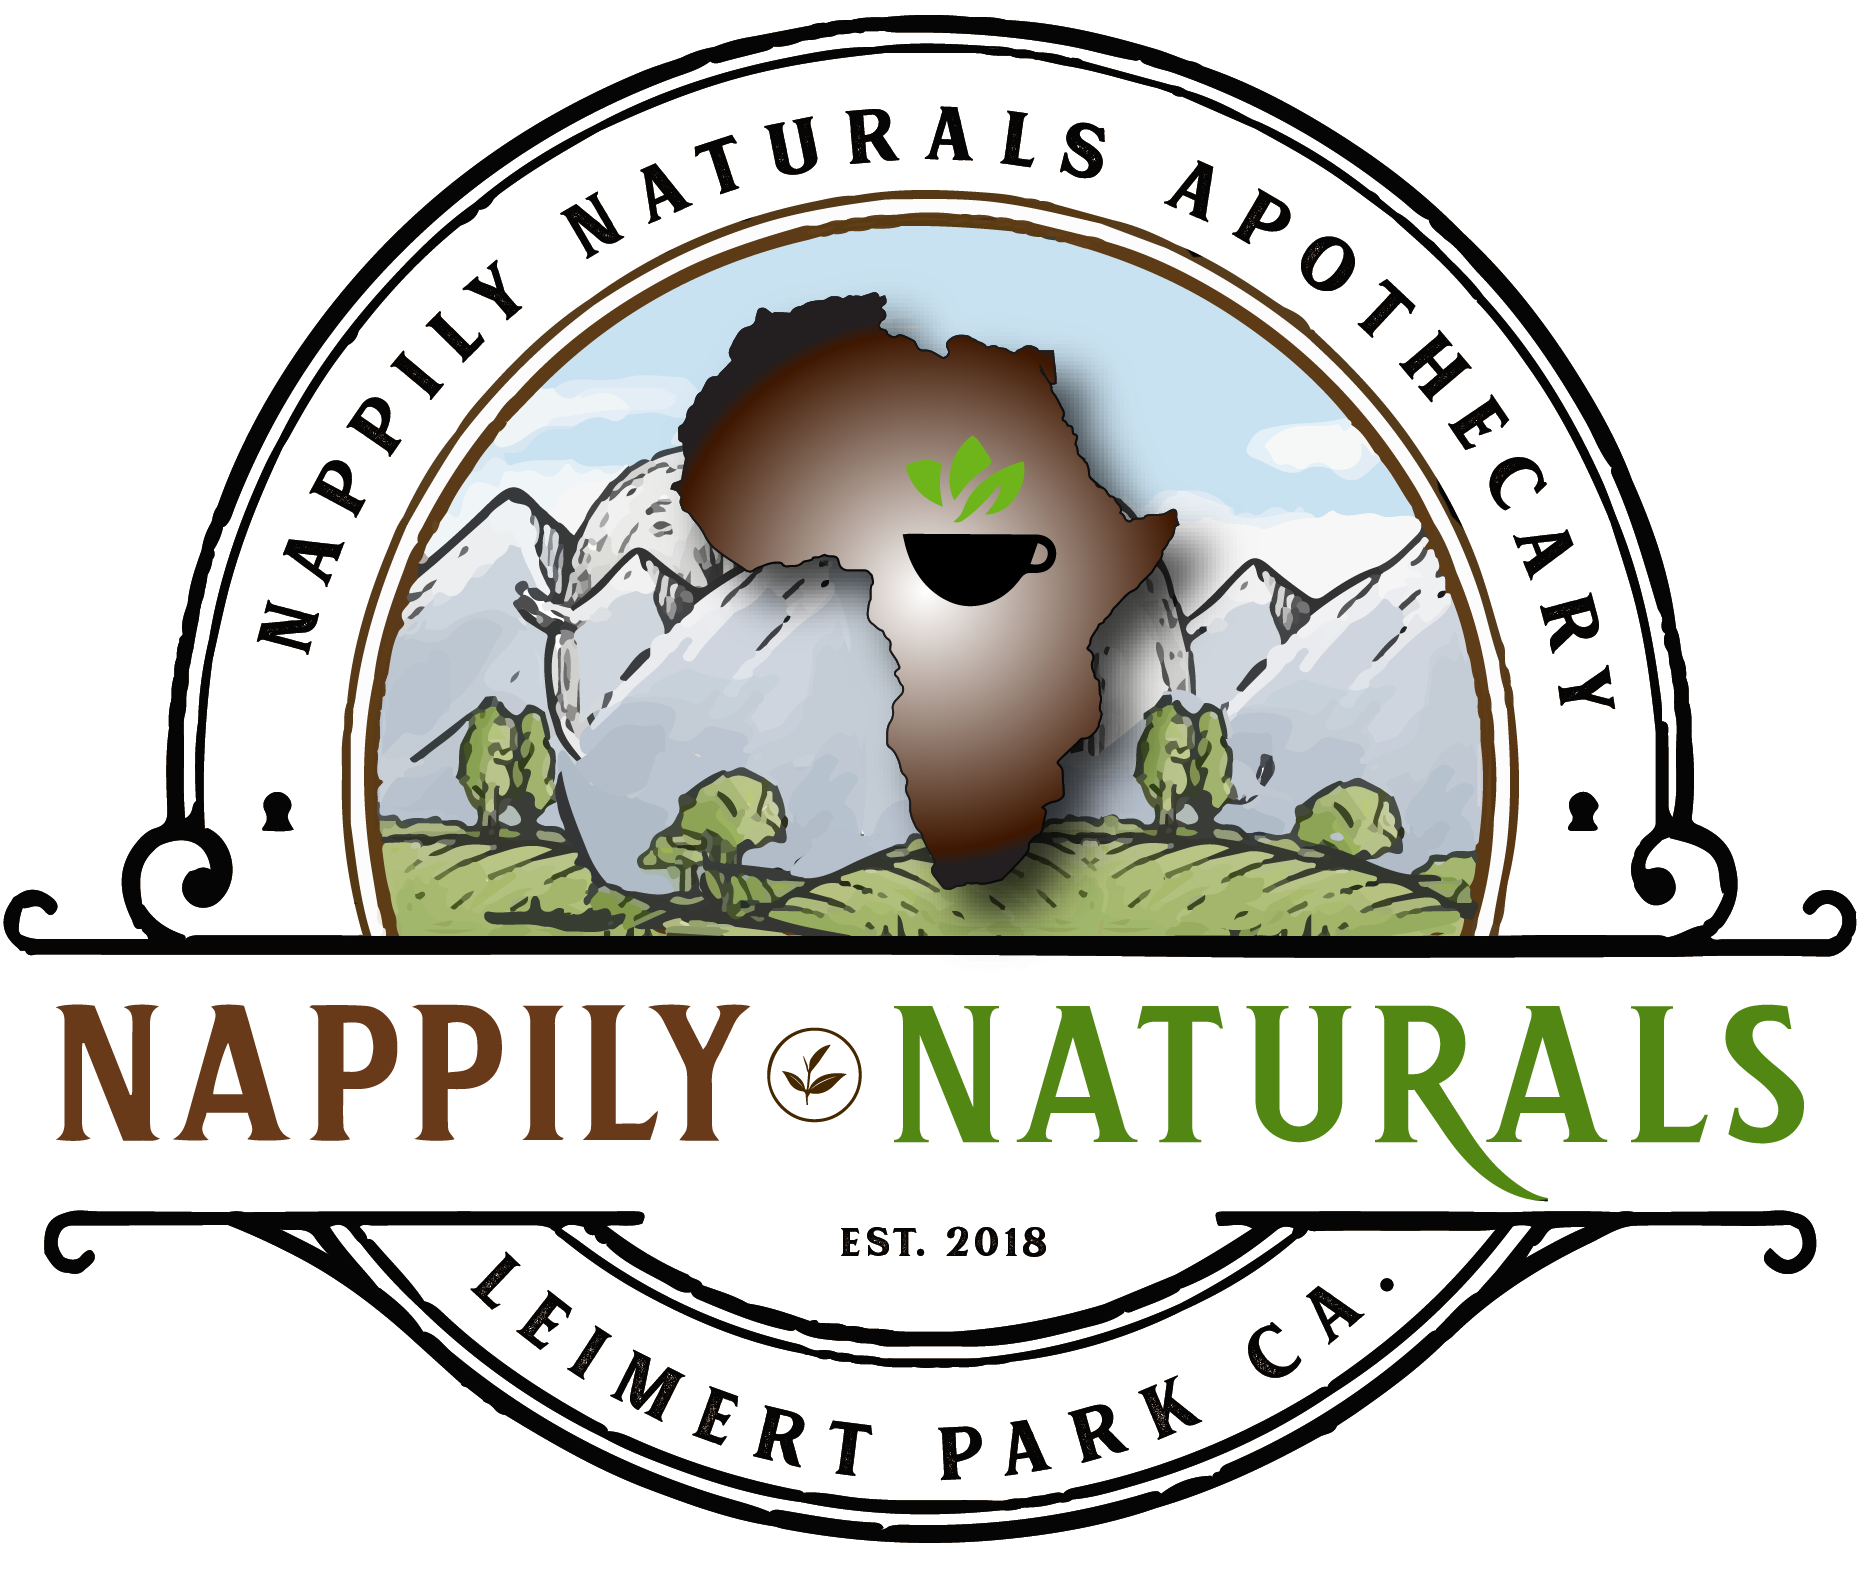 Nappily Naturals l Apothecary & Black Hair l Los Angeles.